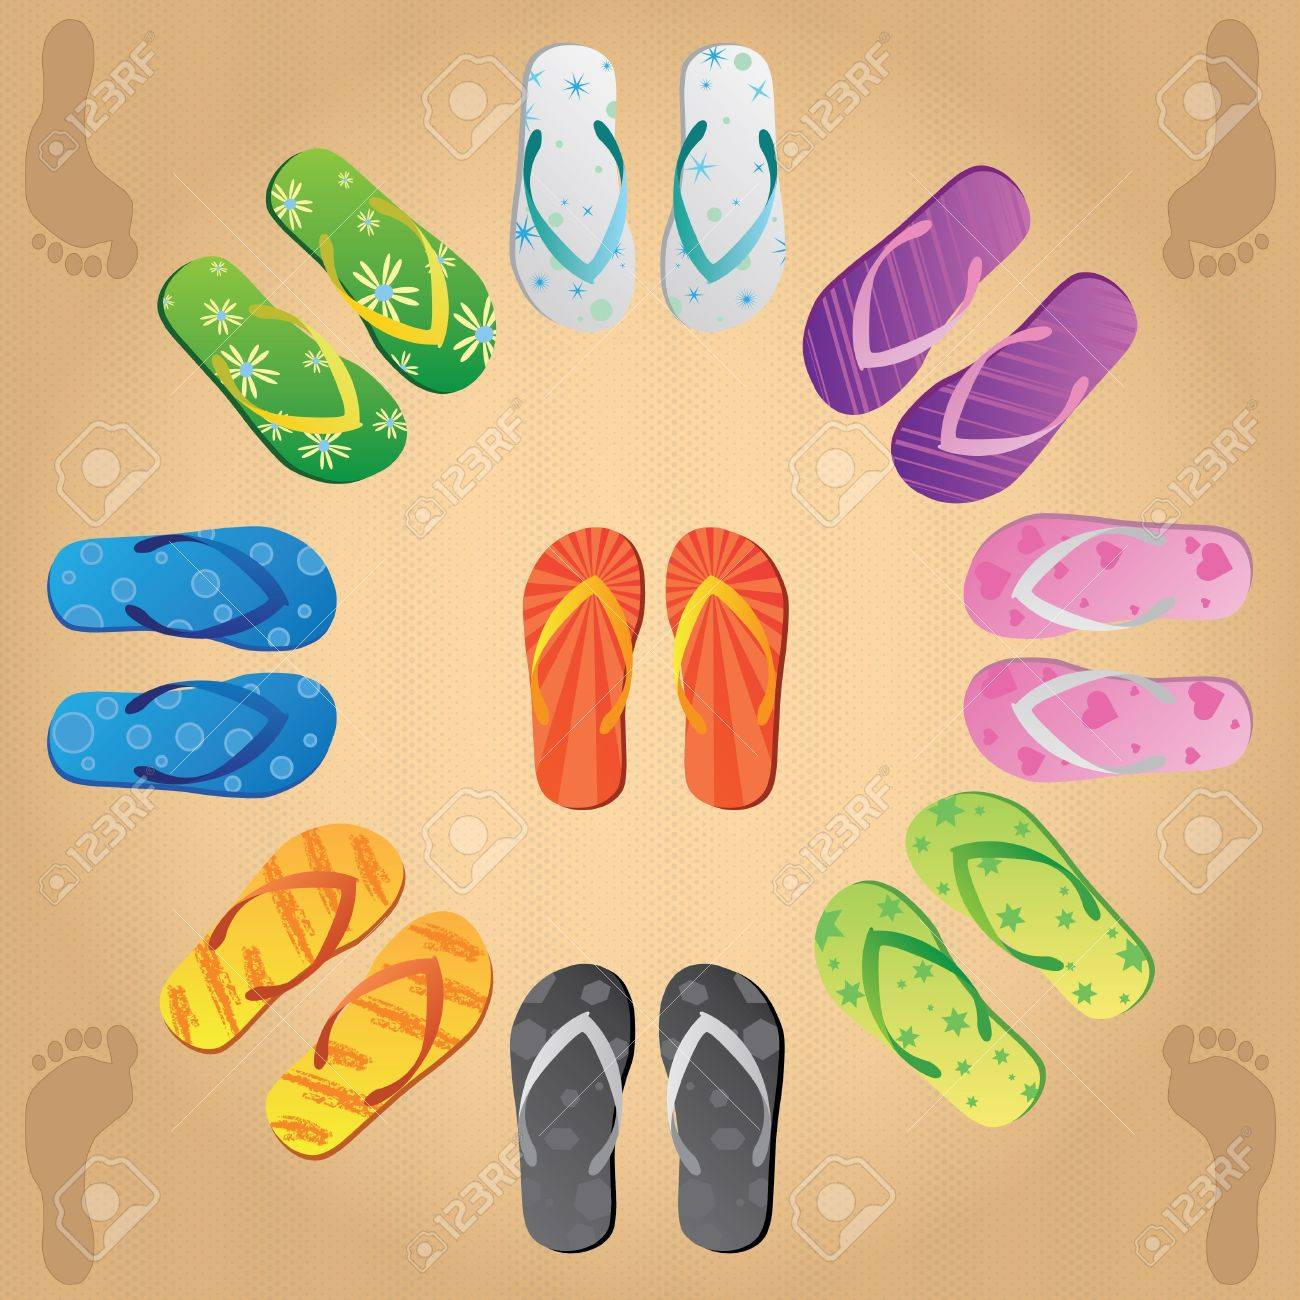 Image of various colorful flip flops on a sandy background. - 9717568